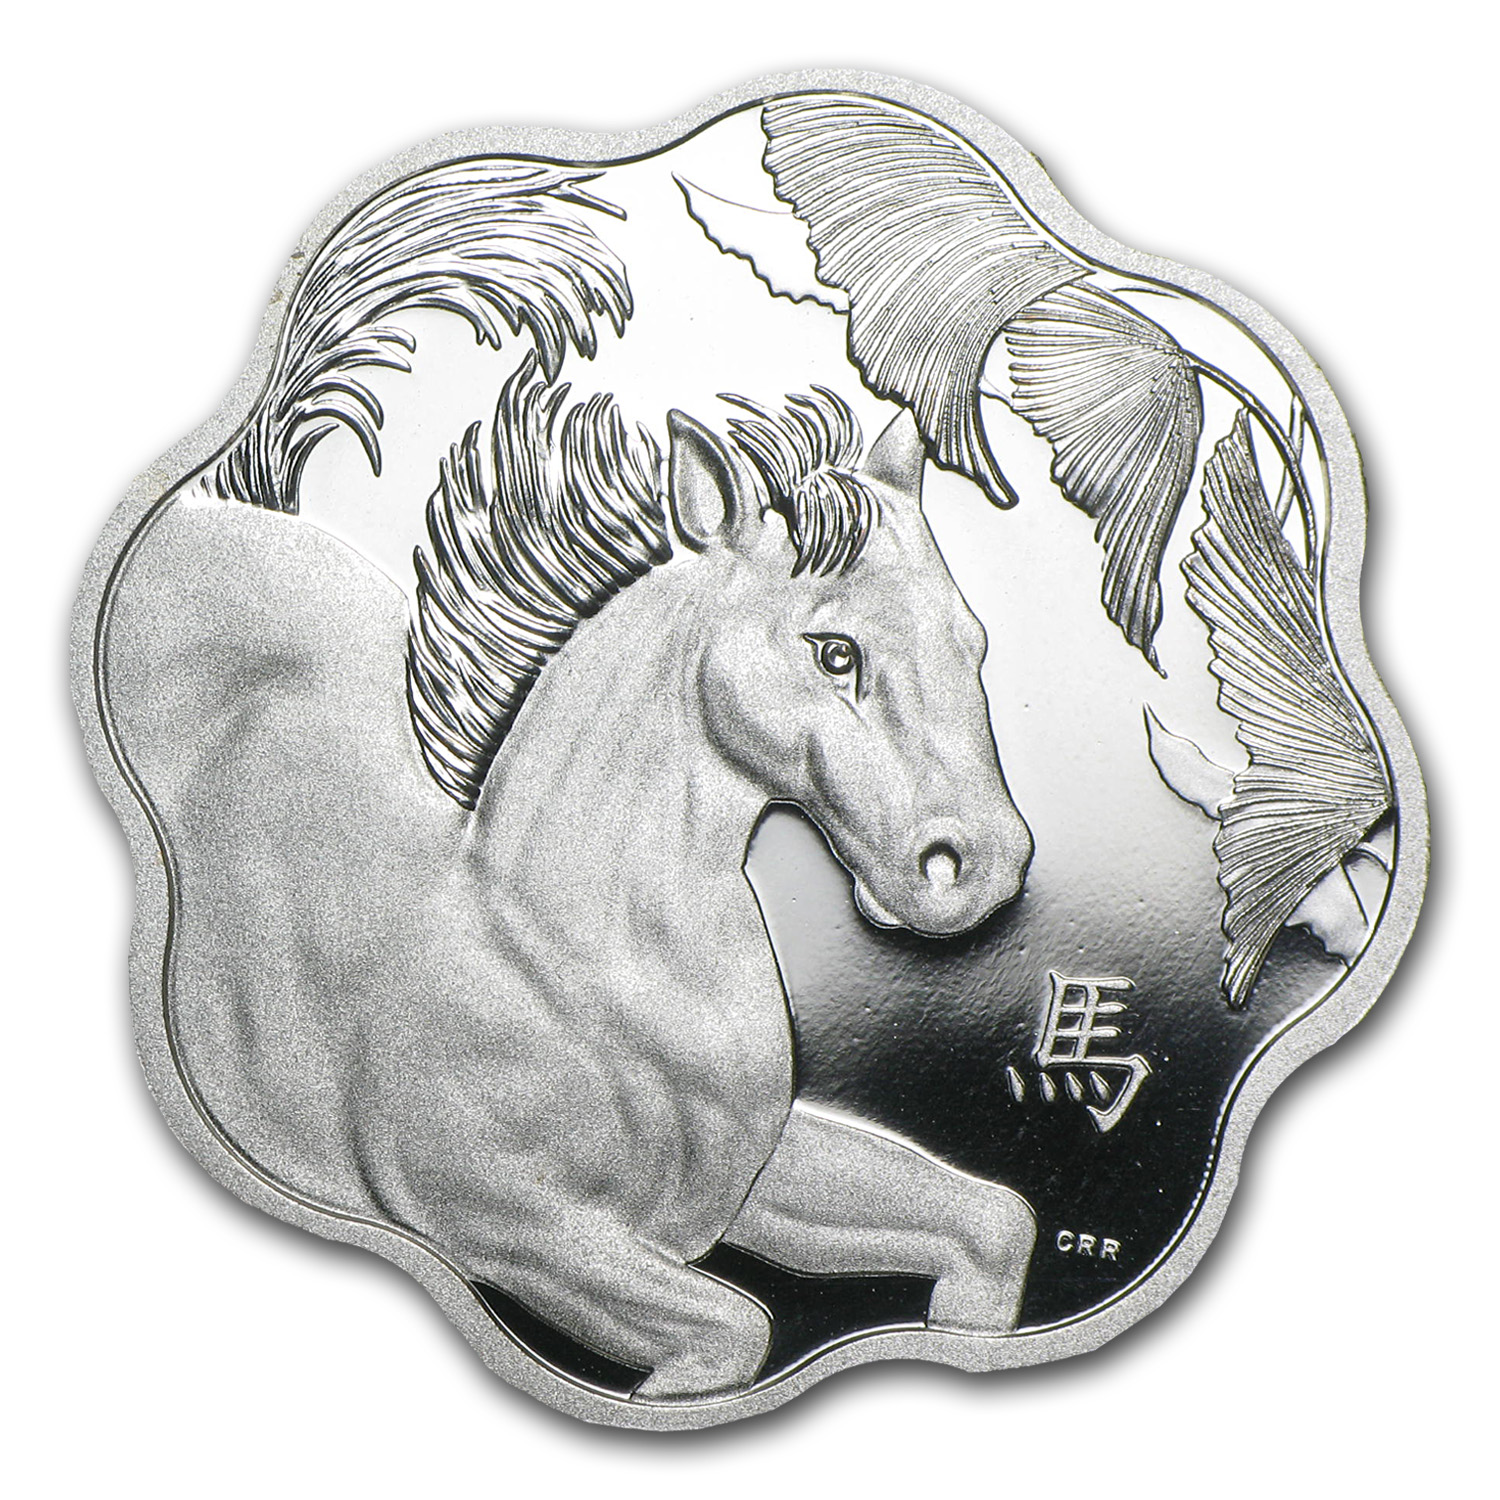 2014 Silver Canadian $15 Lunar Lotus Horse (Abrasions)